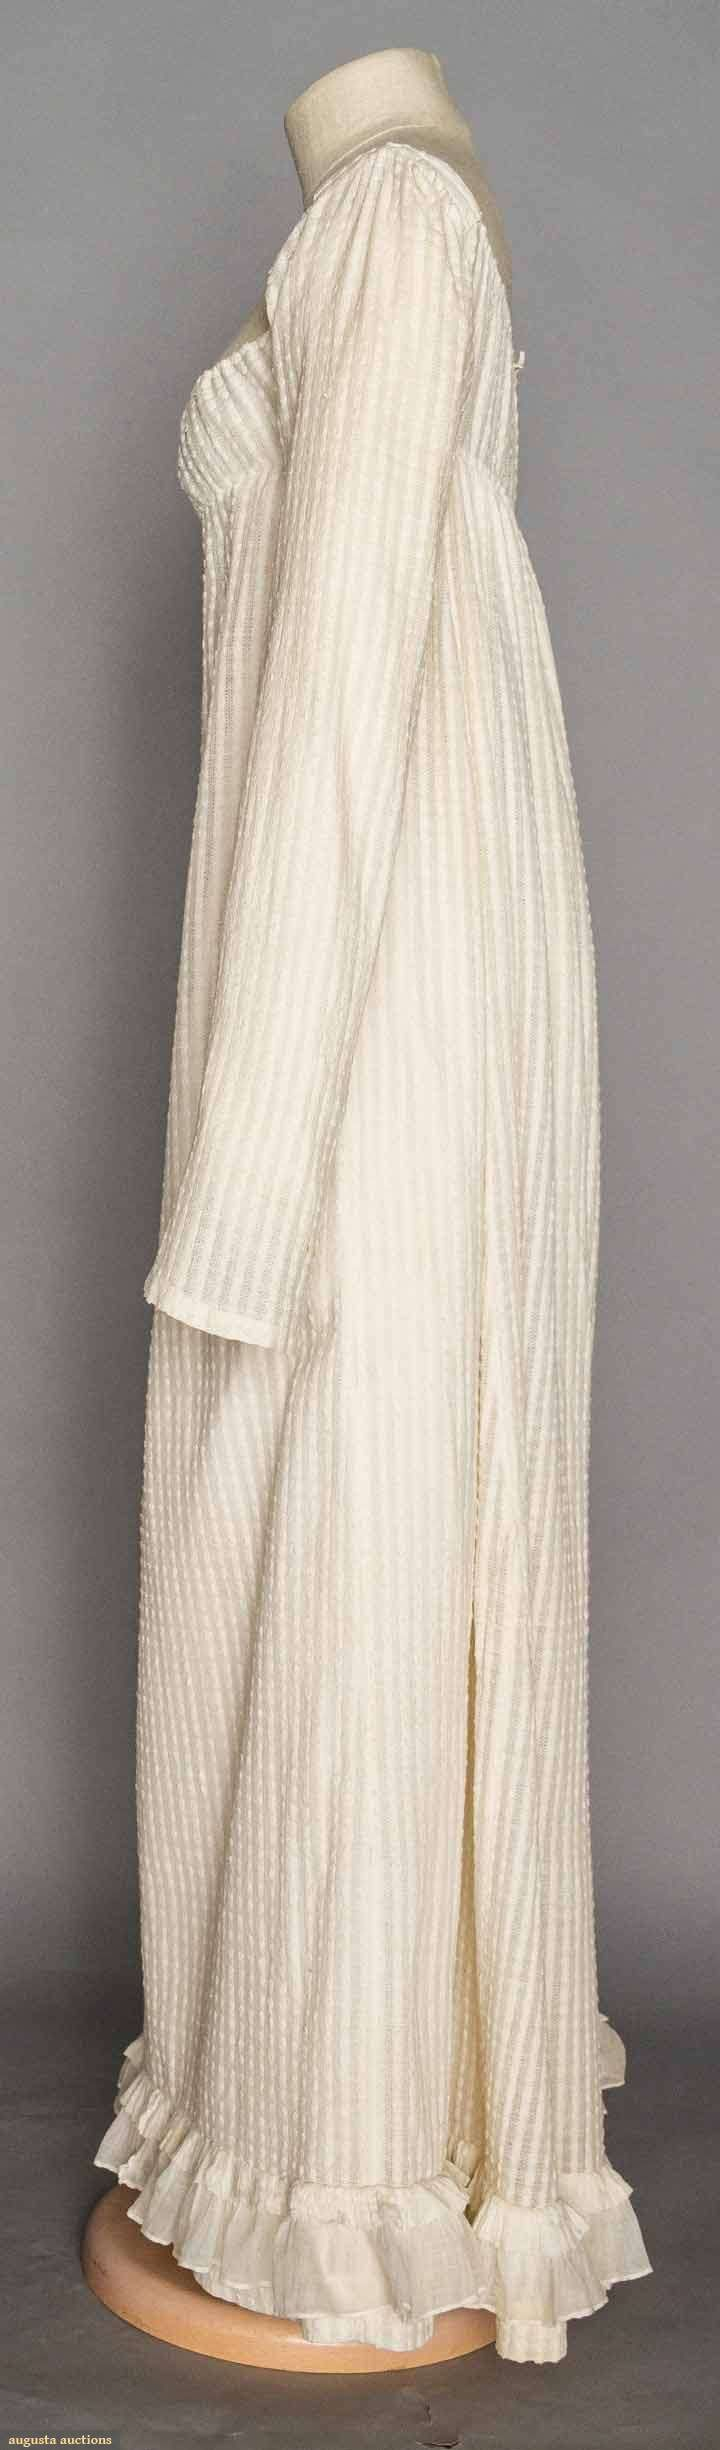 "WHITE COTTON DAY DRESS, 1800-1810 Lot: 8 November 11, 2015 NYC New York City Raised dot textured & striped woven fabric, very high empire bodice, square F neckline, 2 draw-string CB ties, long sleeves, very fine cotton mull double ruffle at hem edge, L 51"", (minor stains, very small holes & 2 mends on bottom F) very good."